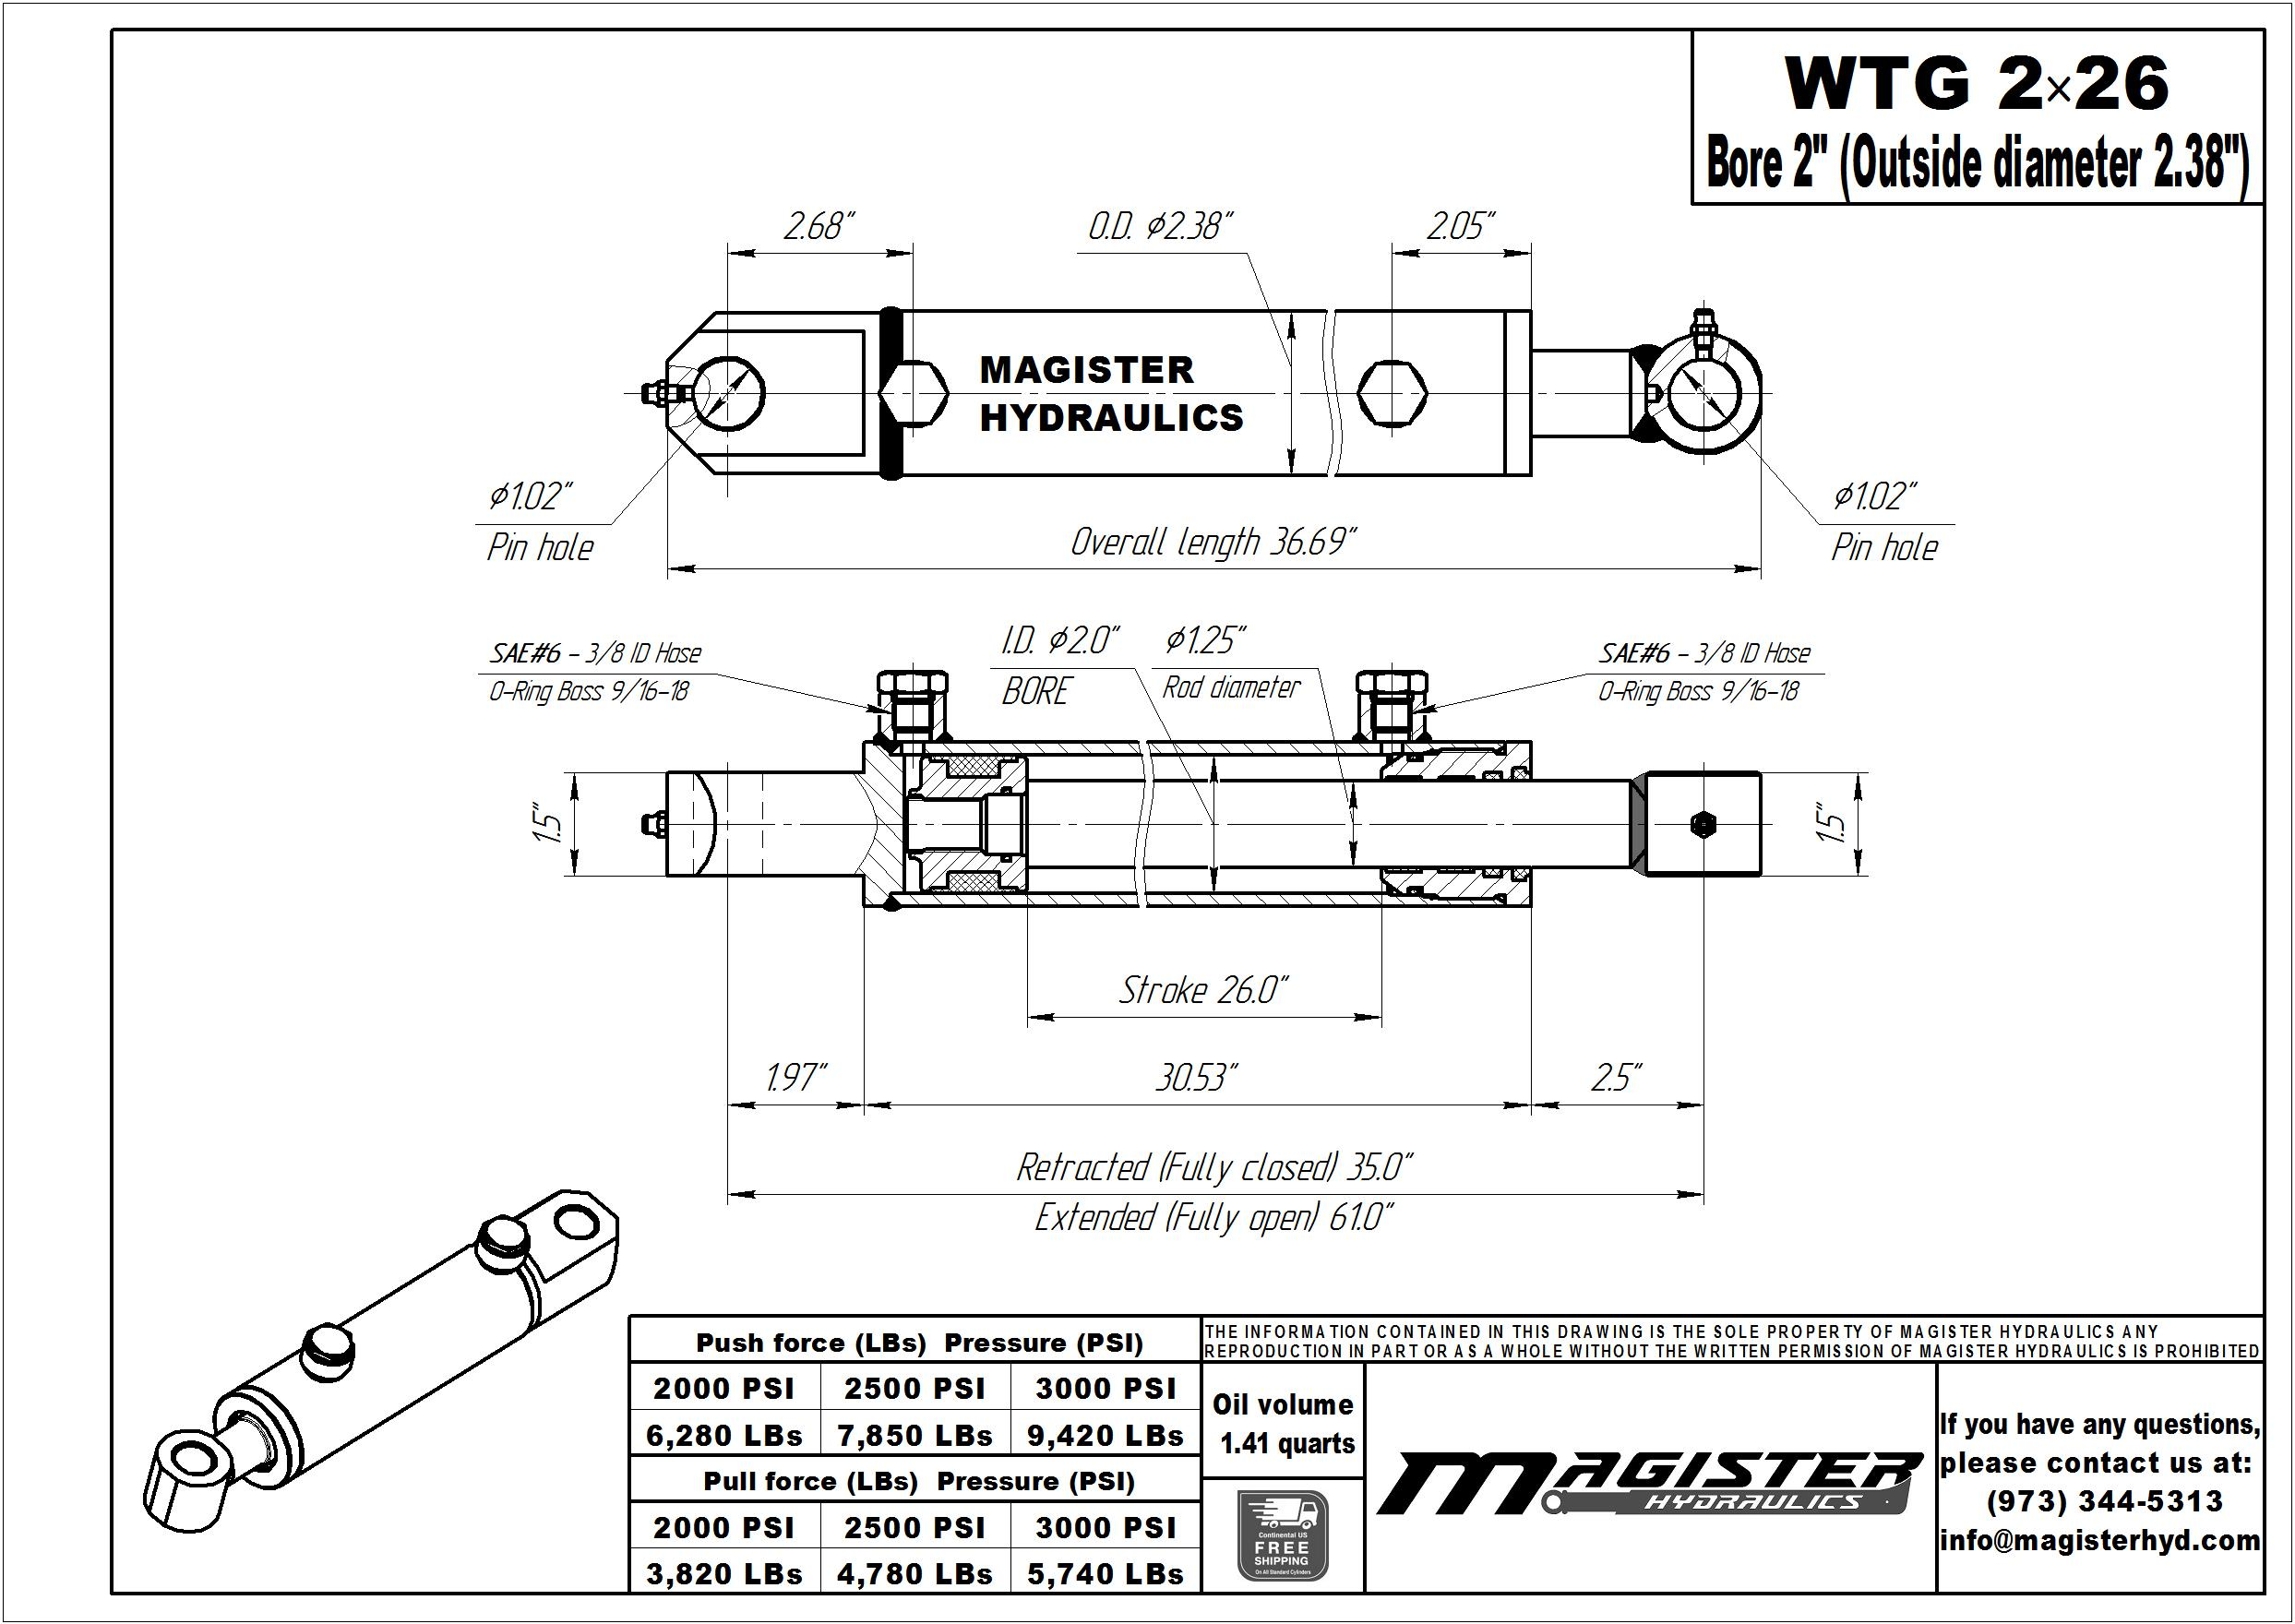 2 bore x 26 stroke hydraulic cylinder, welded tang double acting cylinder   Magister Hydraulics